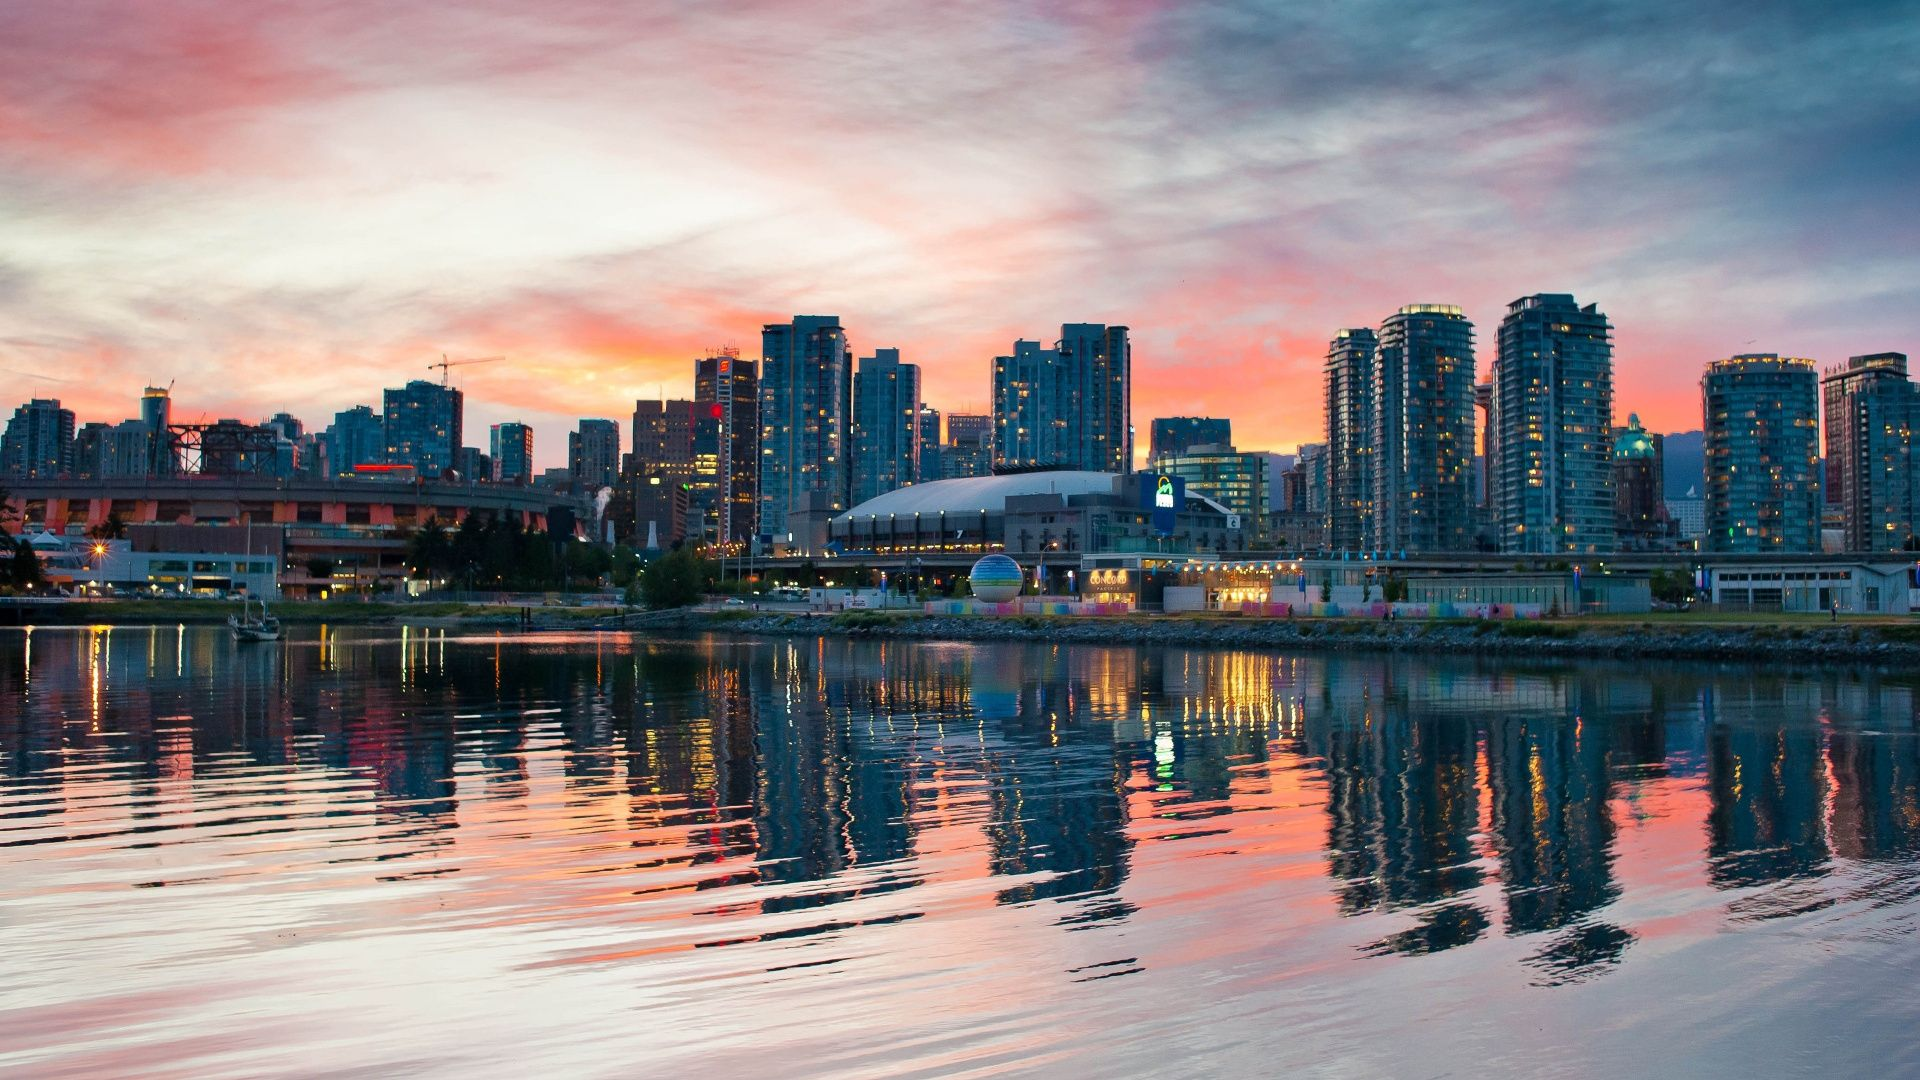 Vancouver computer background